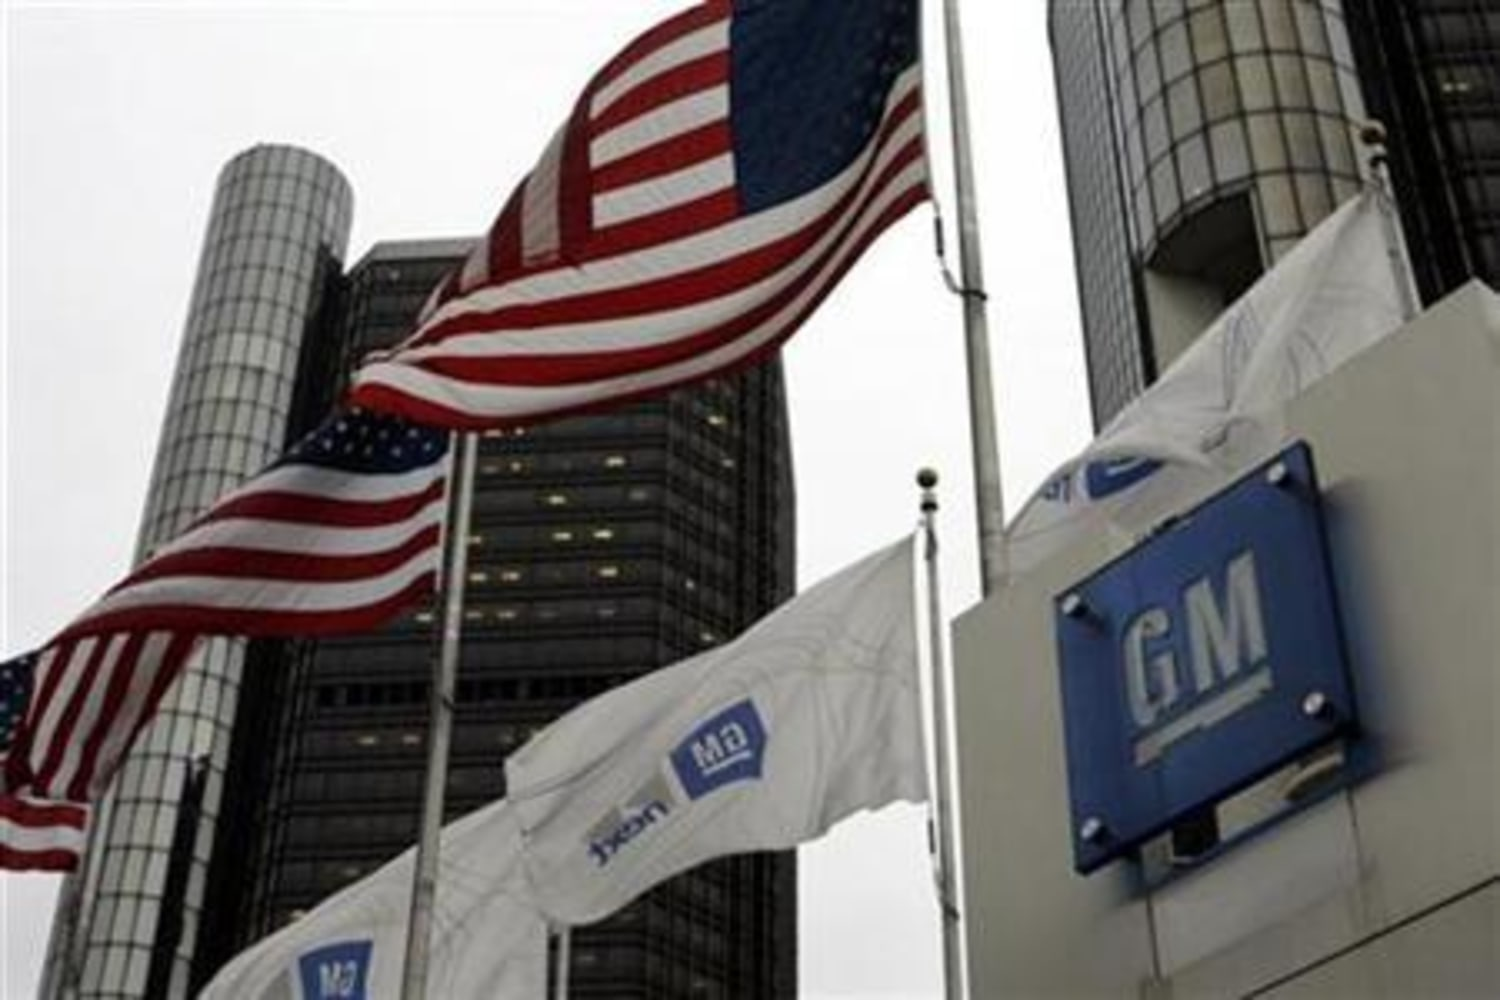 General Motors slashes 1300 jobs in Detroit